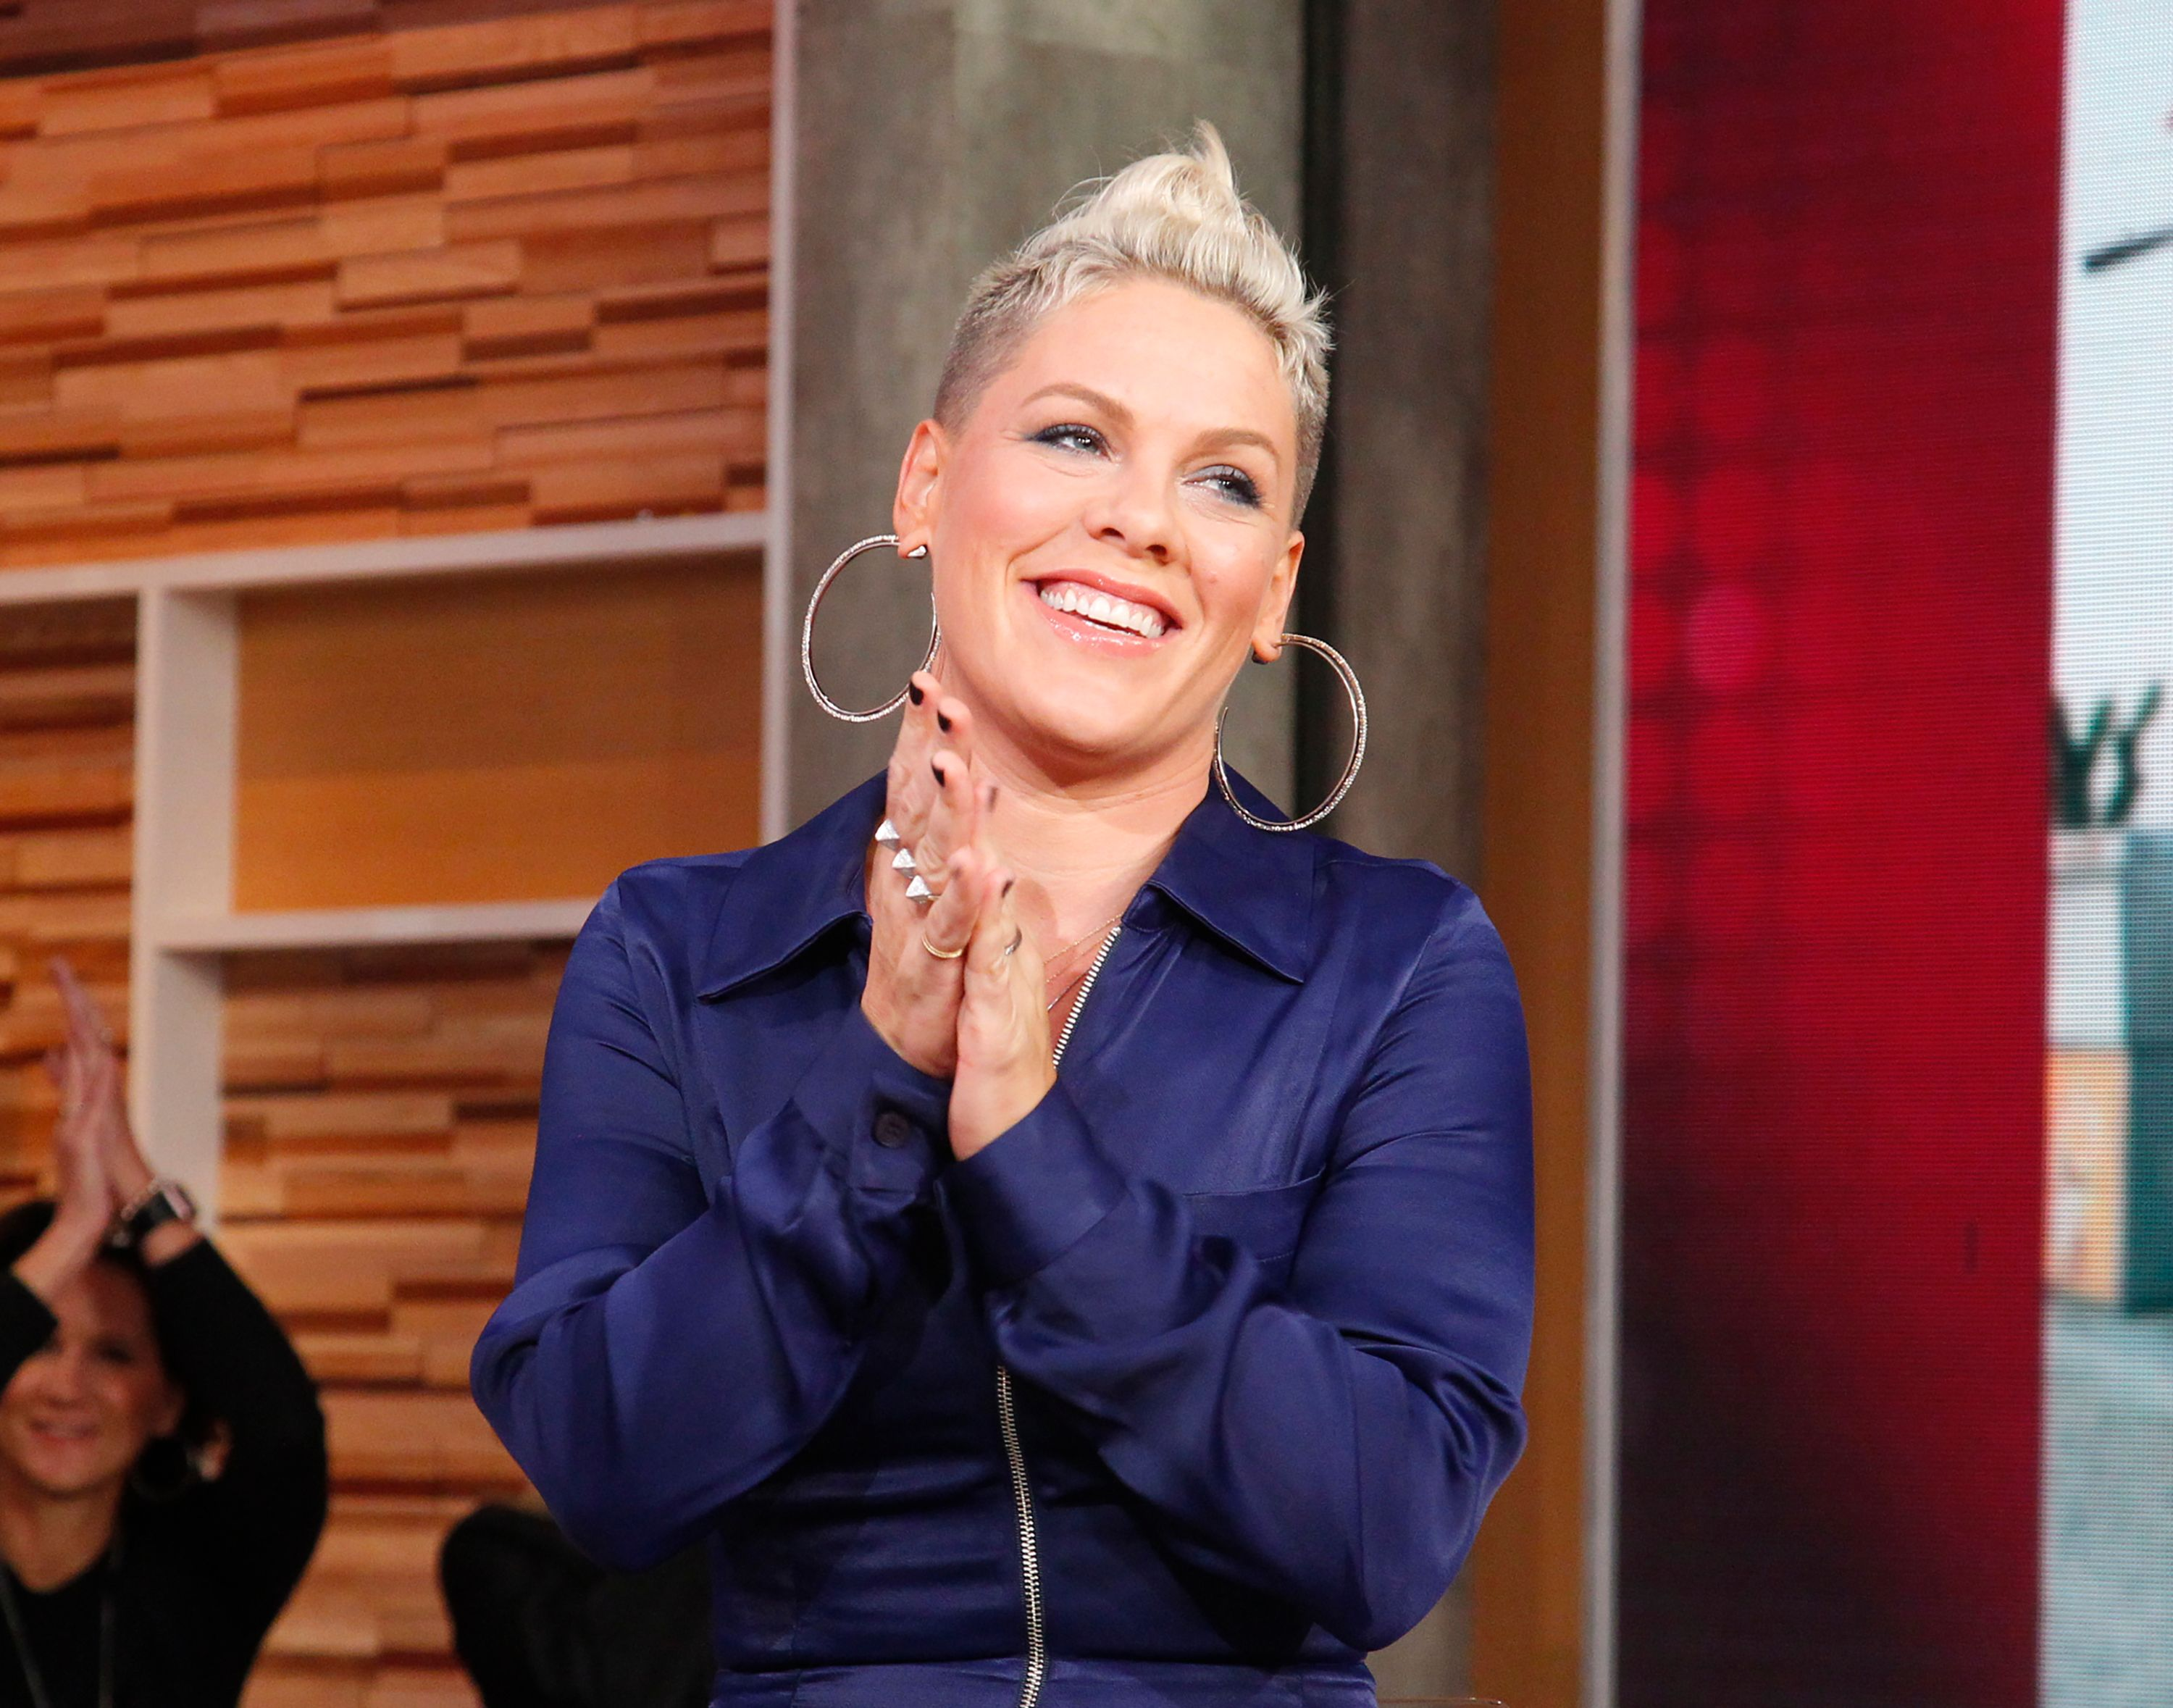 """Pink performs live on """"Good Morning America,"""" on Monday, October 16, 2017.   Photo: Getty Images"""